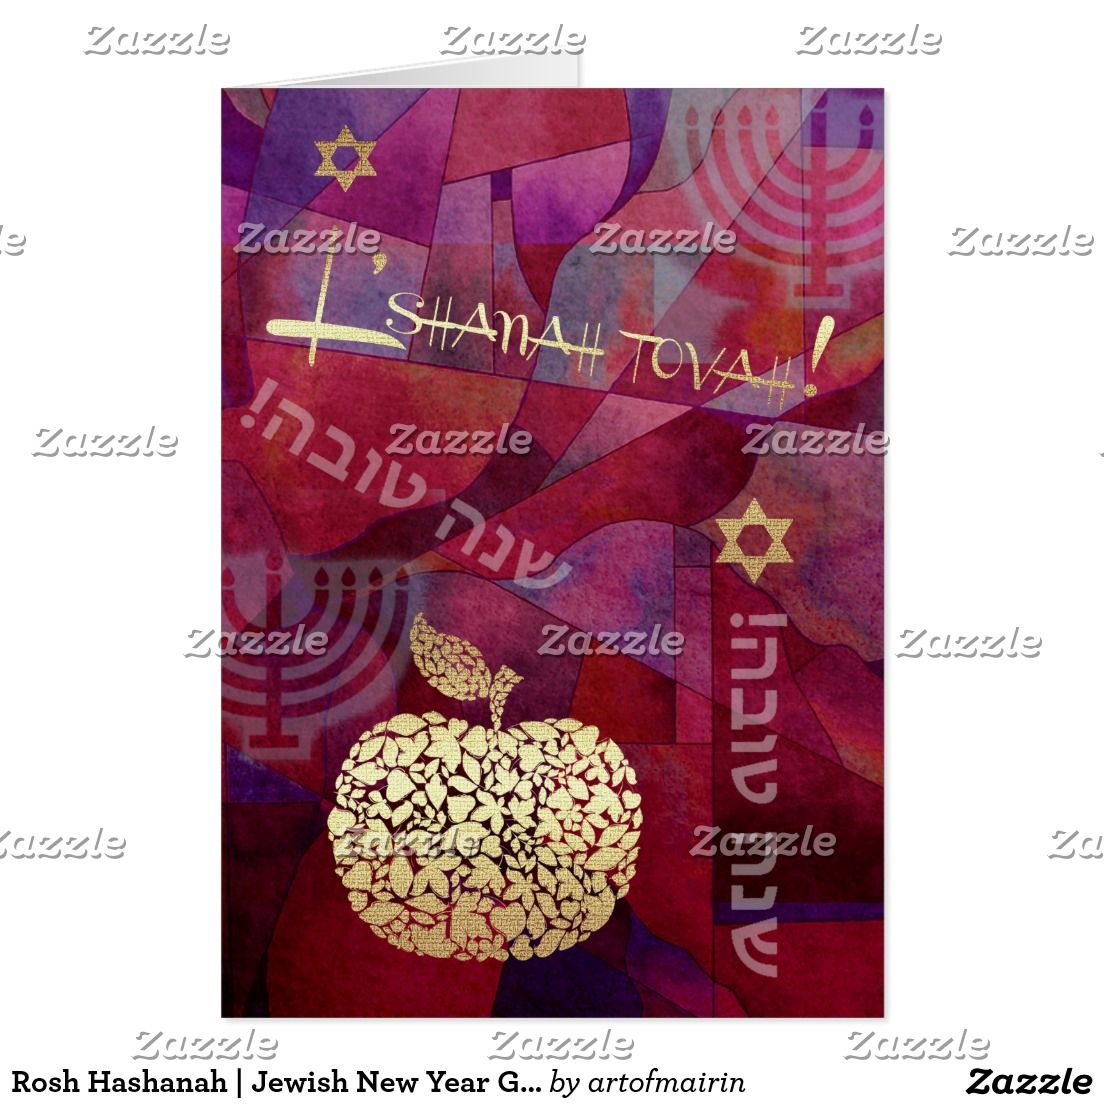 Rosh hashanah jewish new year greeting cards rosh hashanah rosh hashanah jewish new year greeting cards kristyandbryce Choice Image